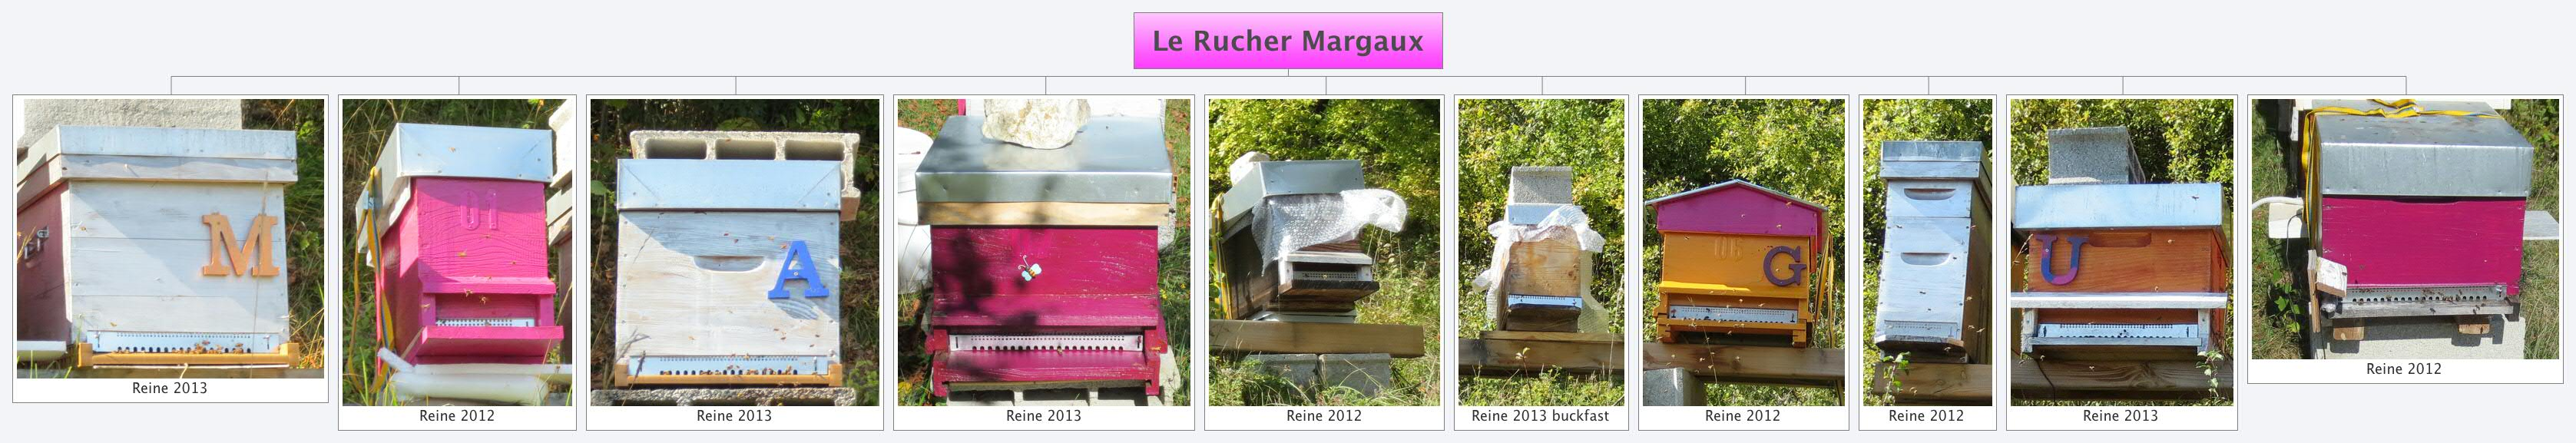 Le Rucher Margaux1